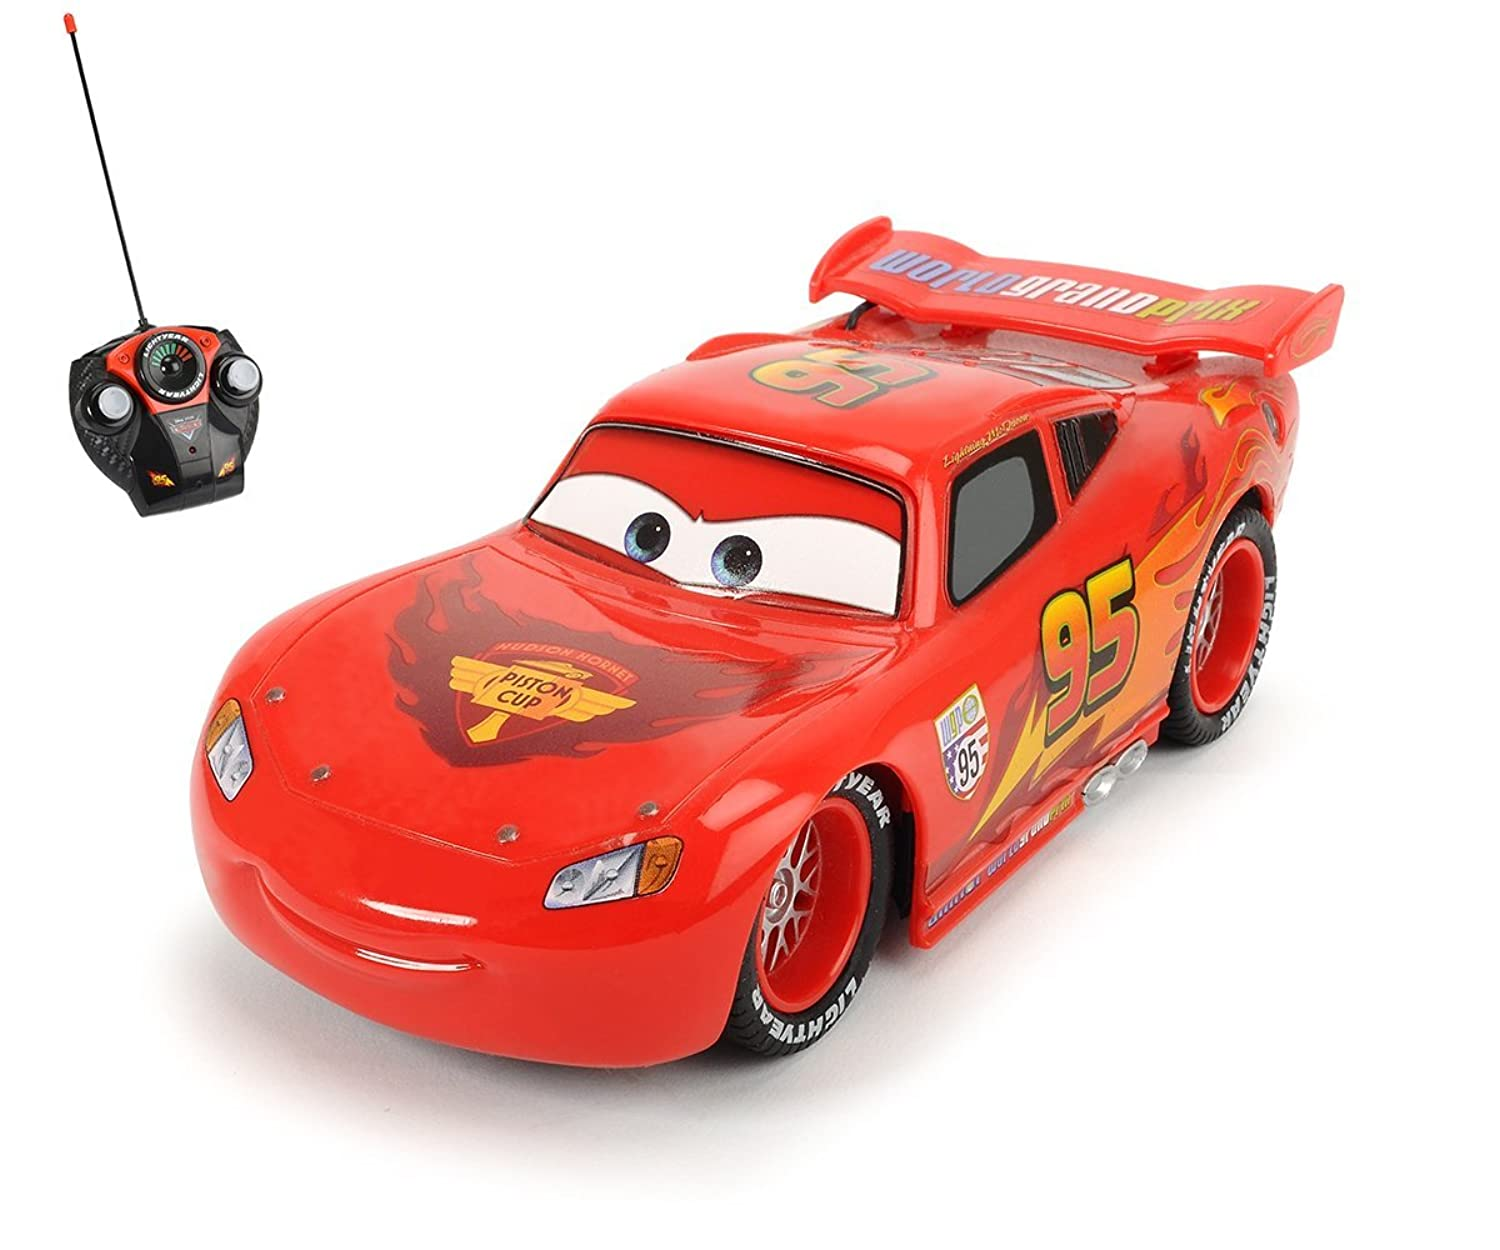 Toy Remote Control Cars For Boys : Disney cars boys toy car with remote control red ebay